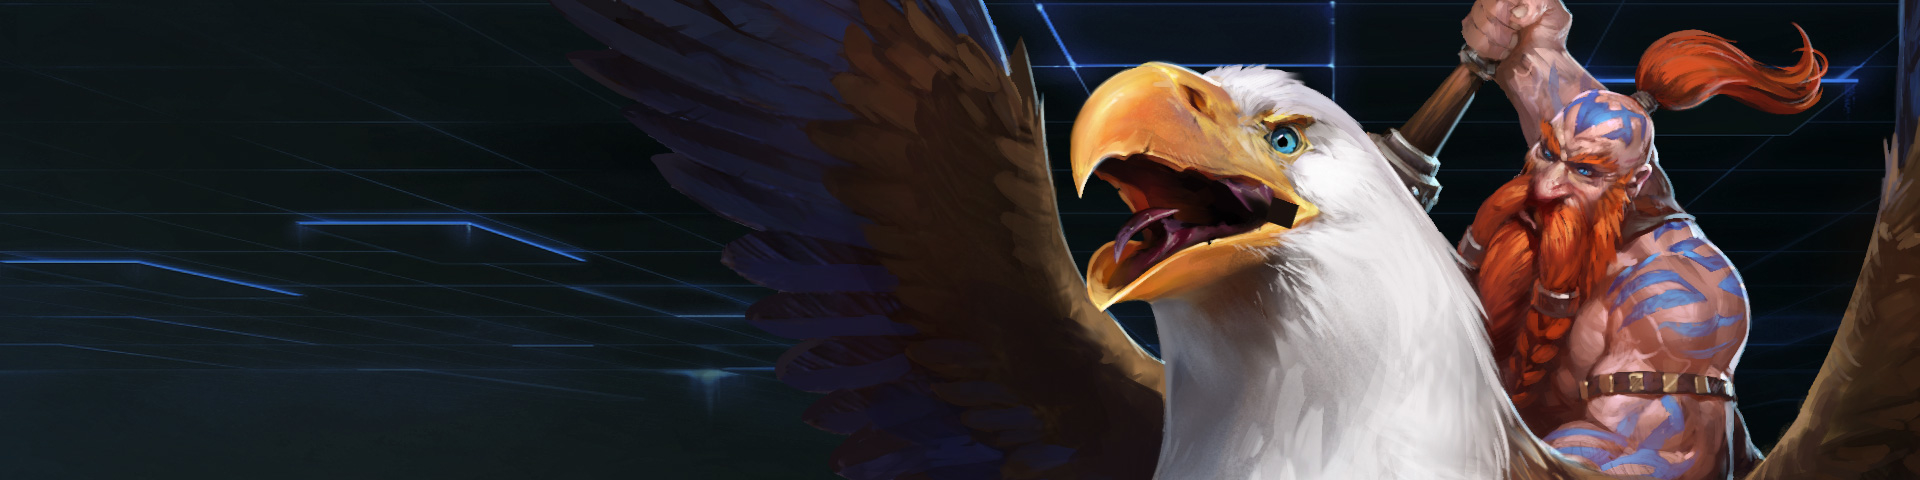 Top 8 Tips To Help You Master Falstad Articles Tempo Storm Последние твиты от hots logs (@hotslogs). top 8 tips to help you master falstad